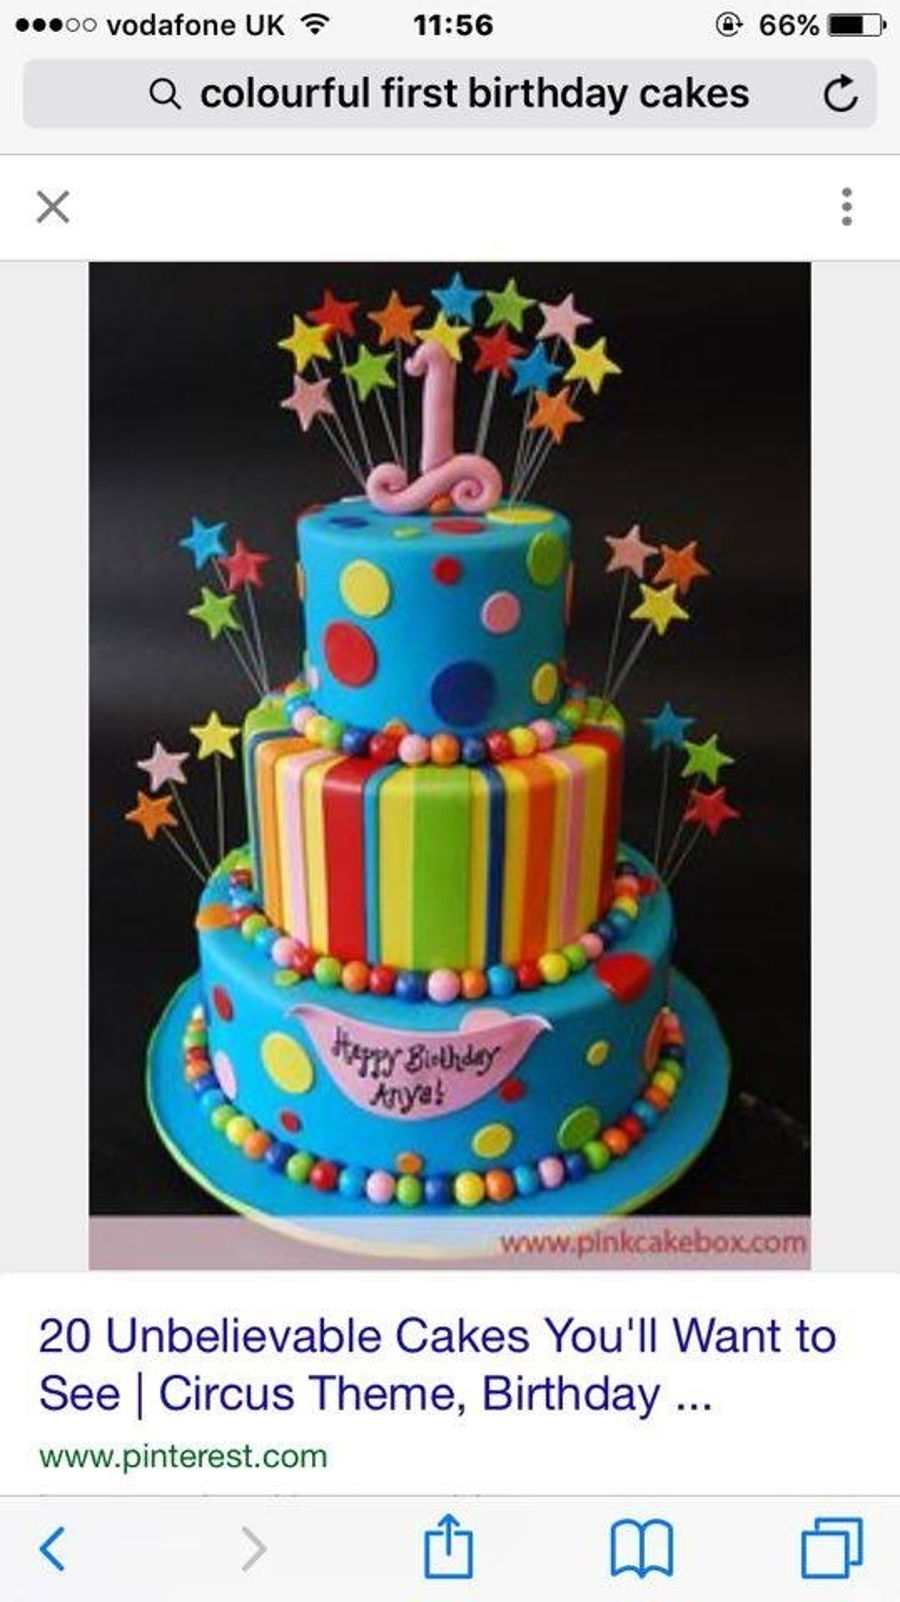 900_3-tier-cake-to-feed-appro_96330956faac0600b89.jpg